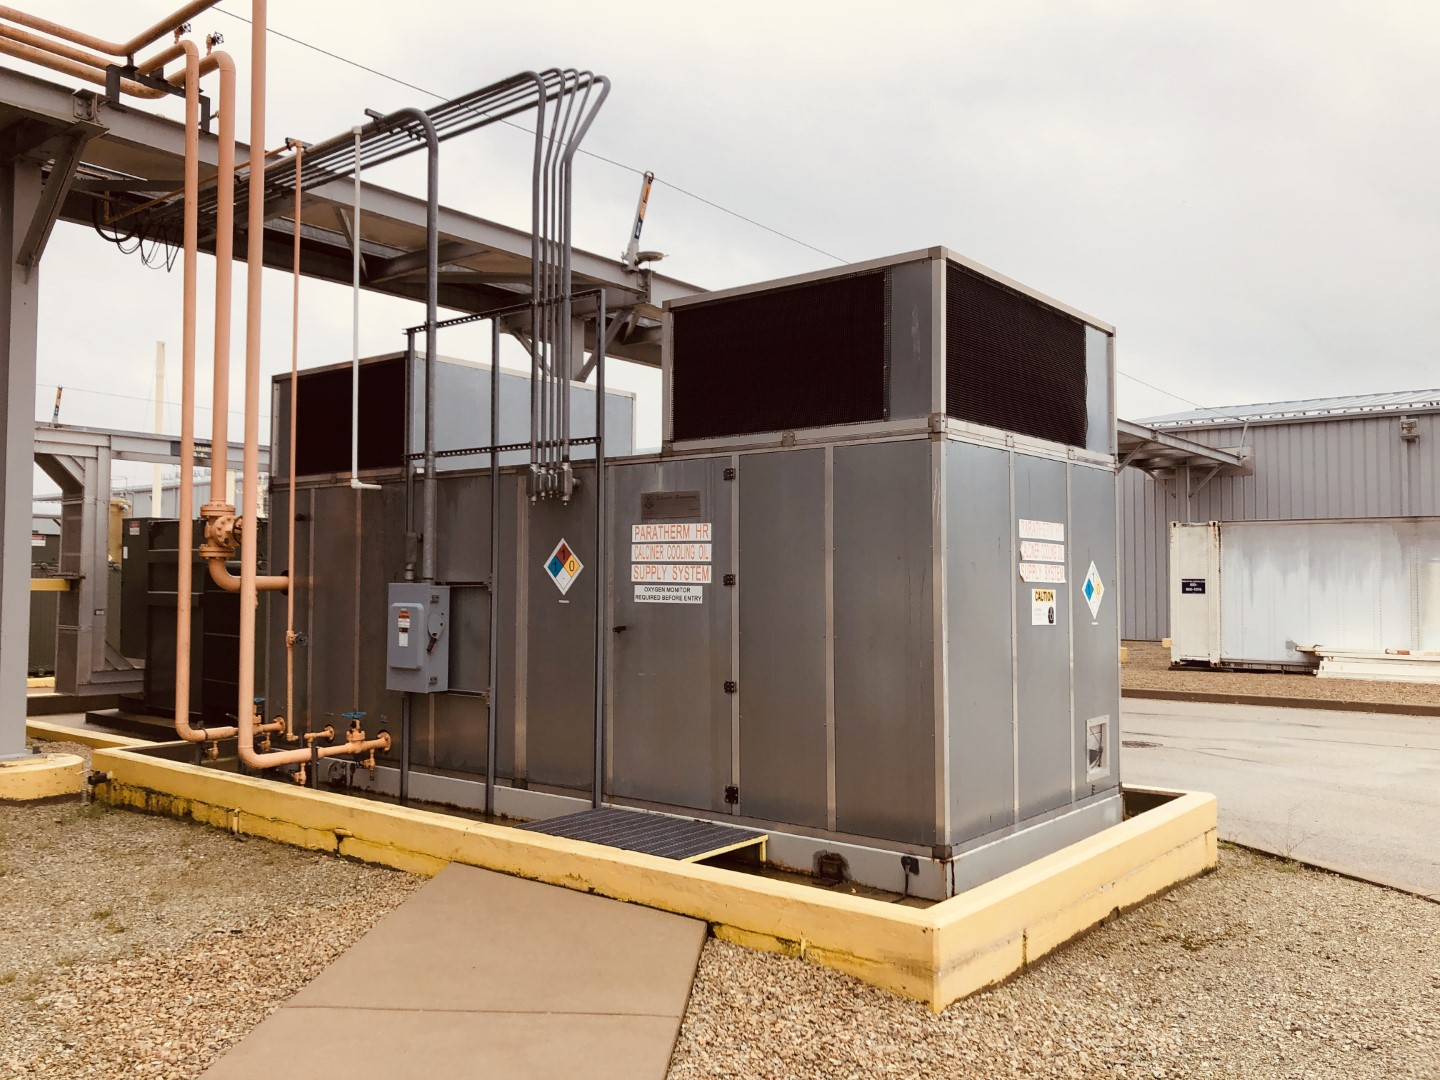 60 Ton Edwards Chiller, Model CE-75-A- 5ZB3, Air Cooled